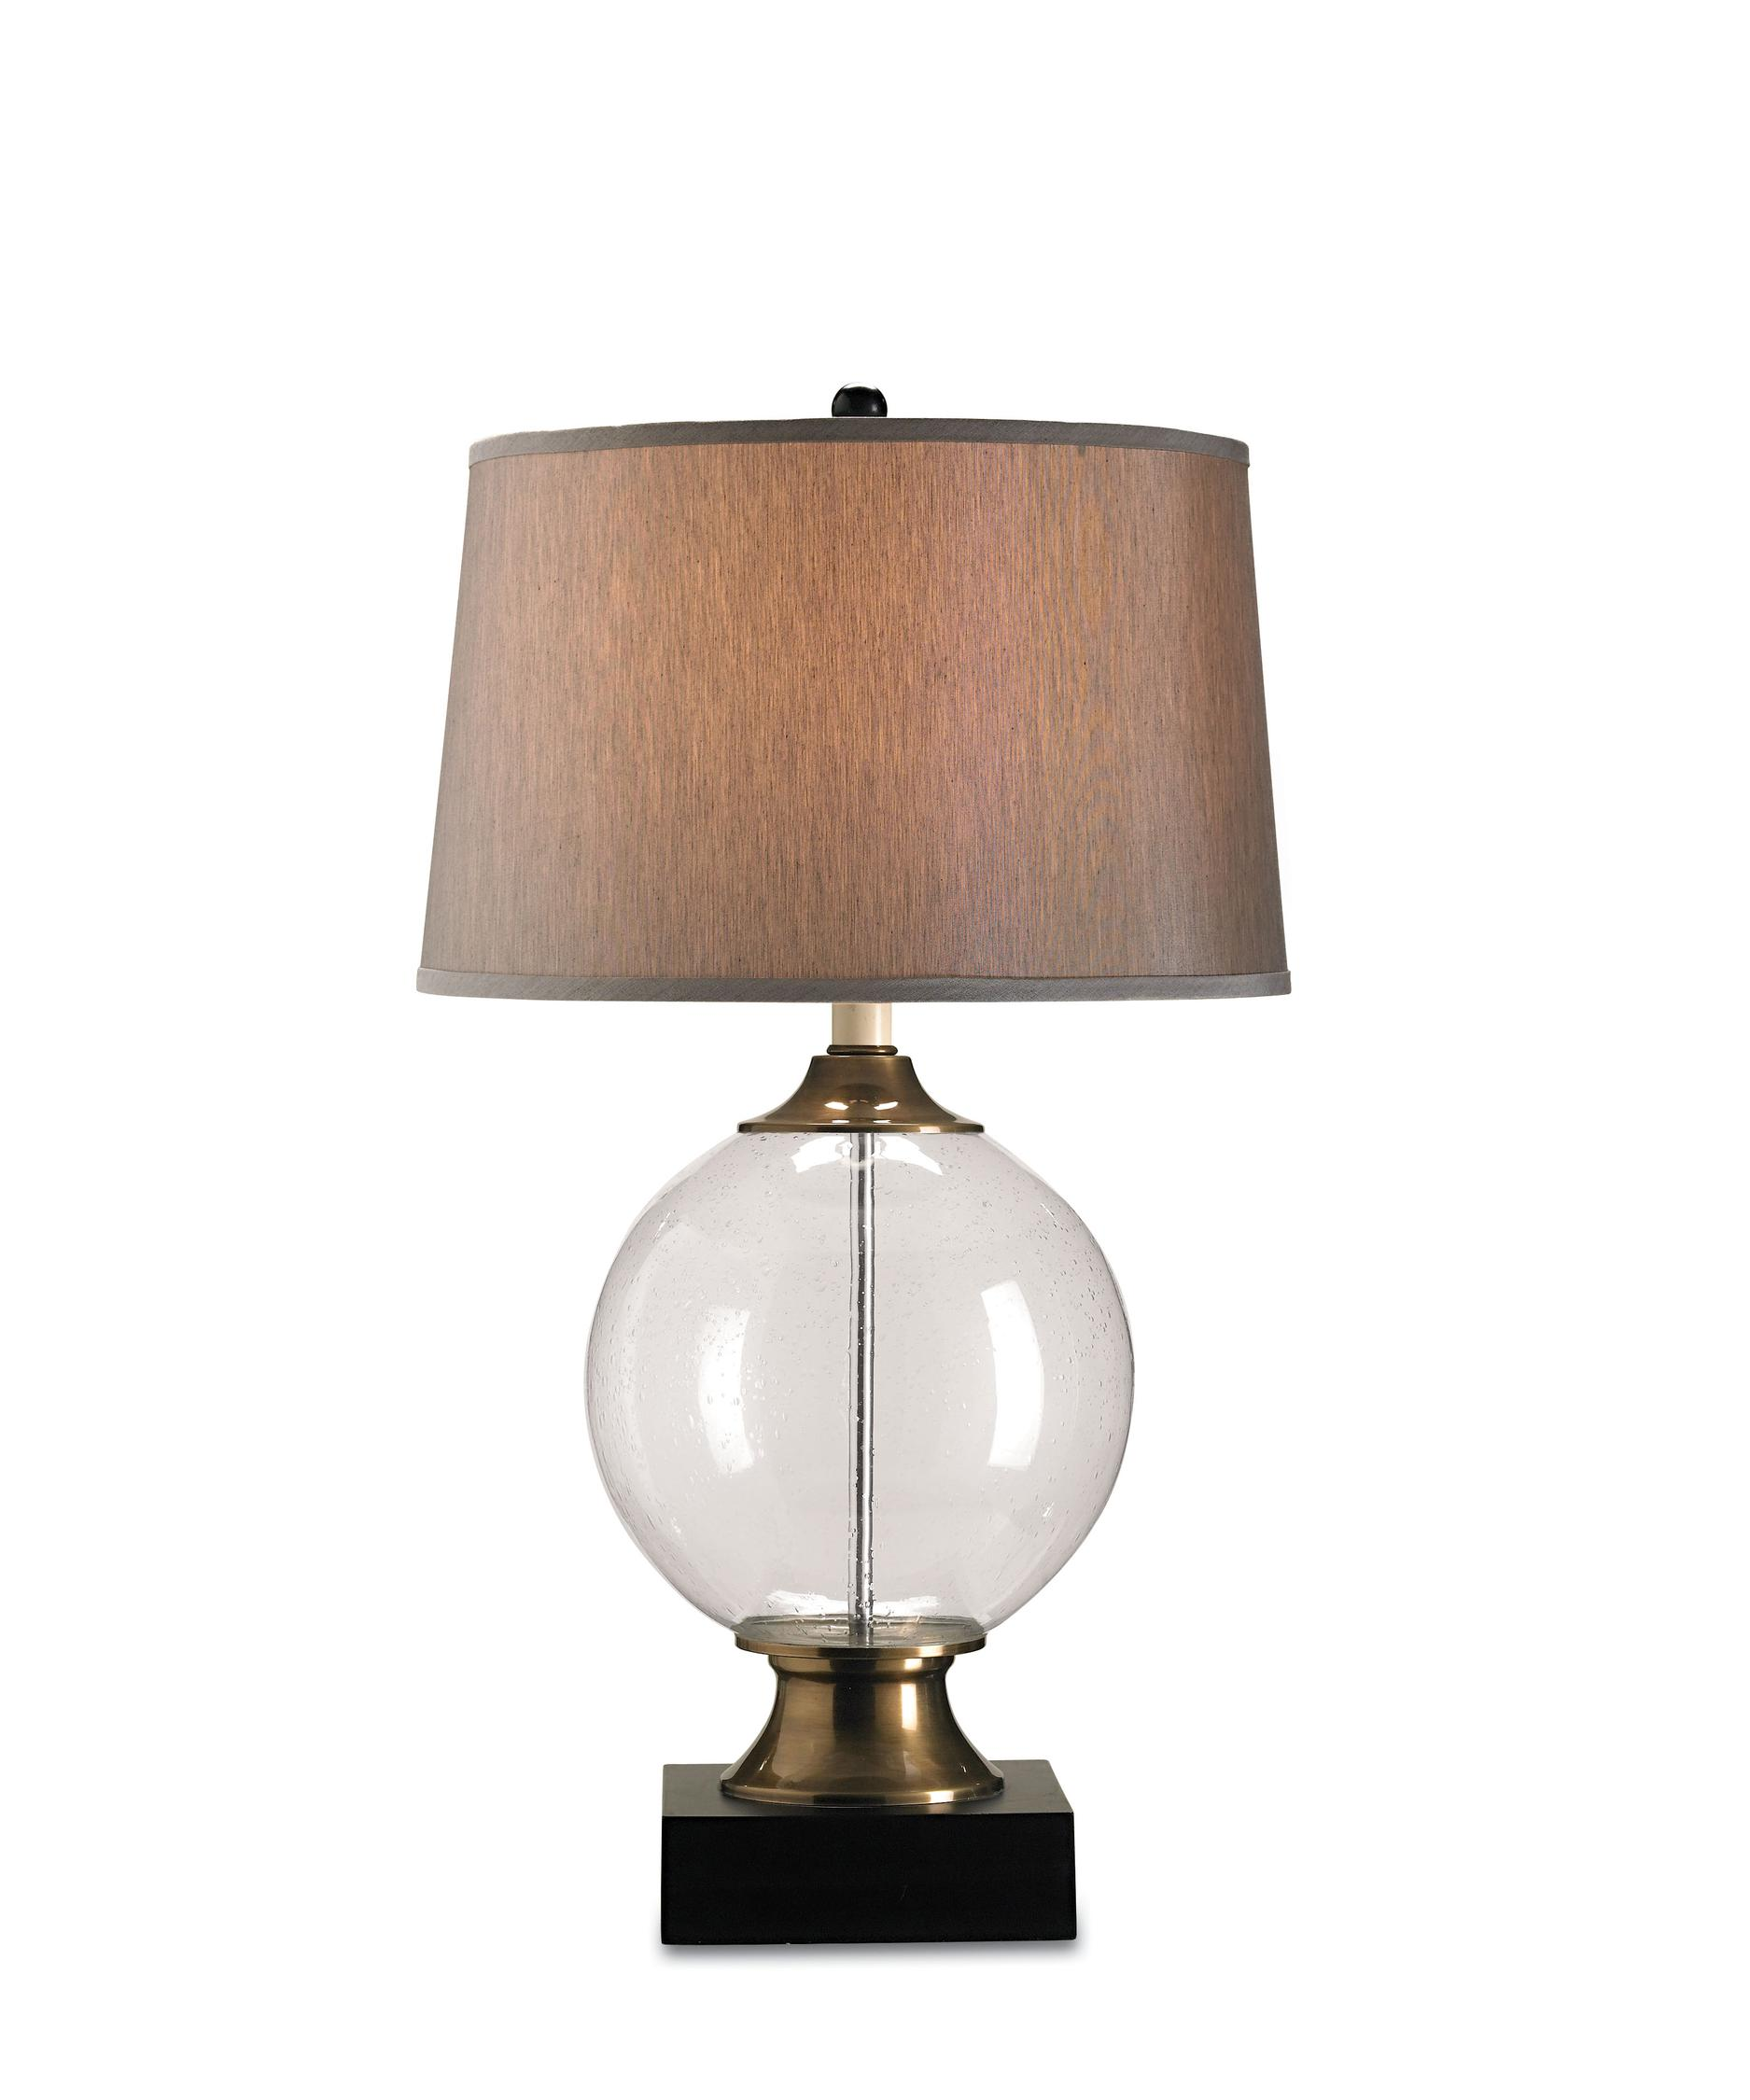 Blown glass table lamps - Shown In Blown Glass Black Finish Seeded Glass And Silver Shantung Shade